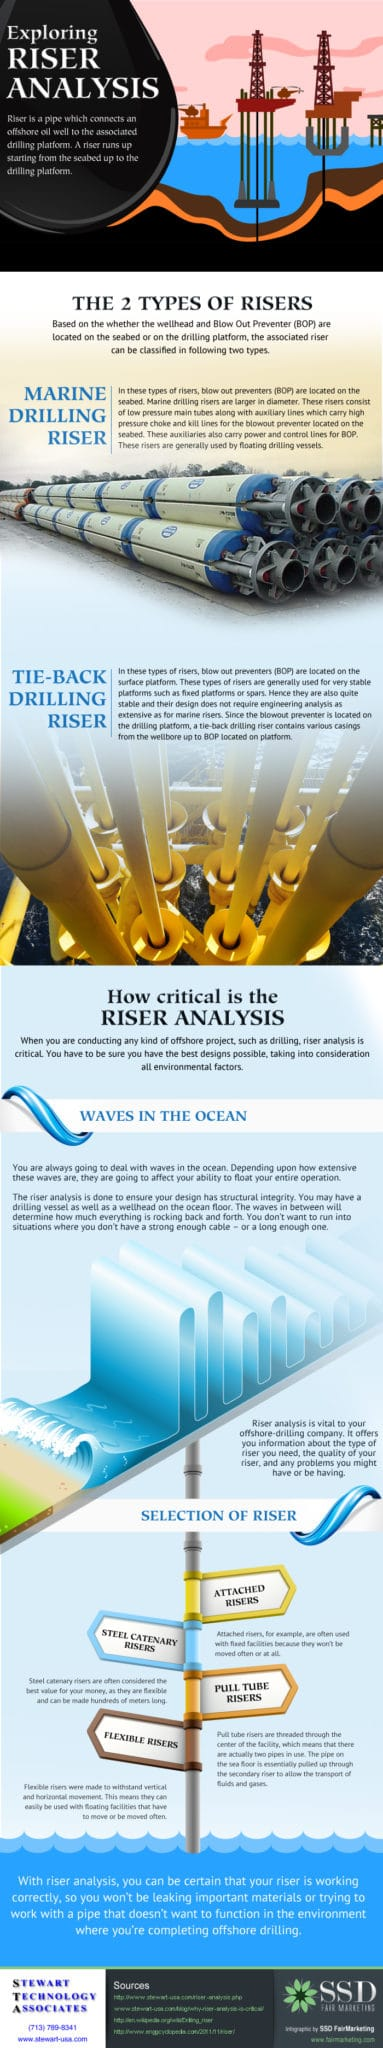 riser analysis infographic march 2014